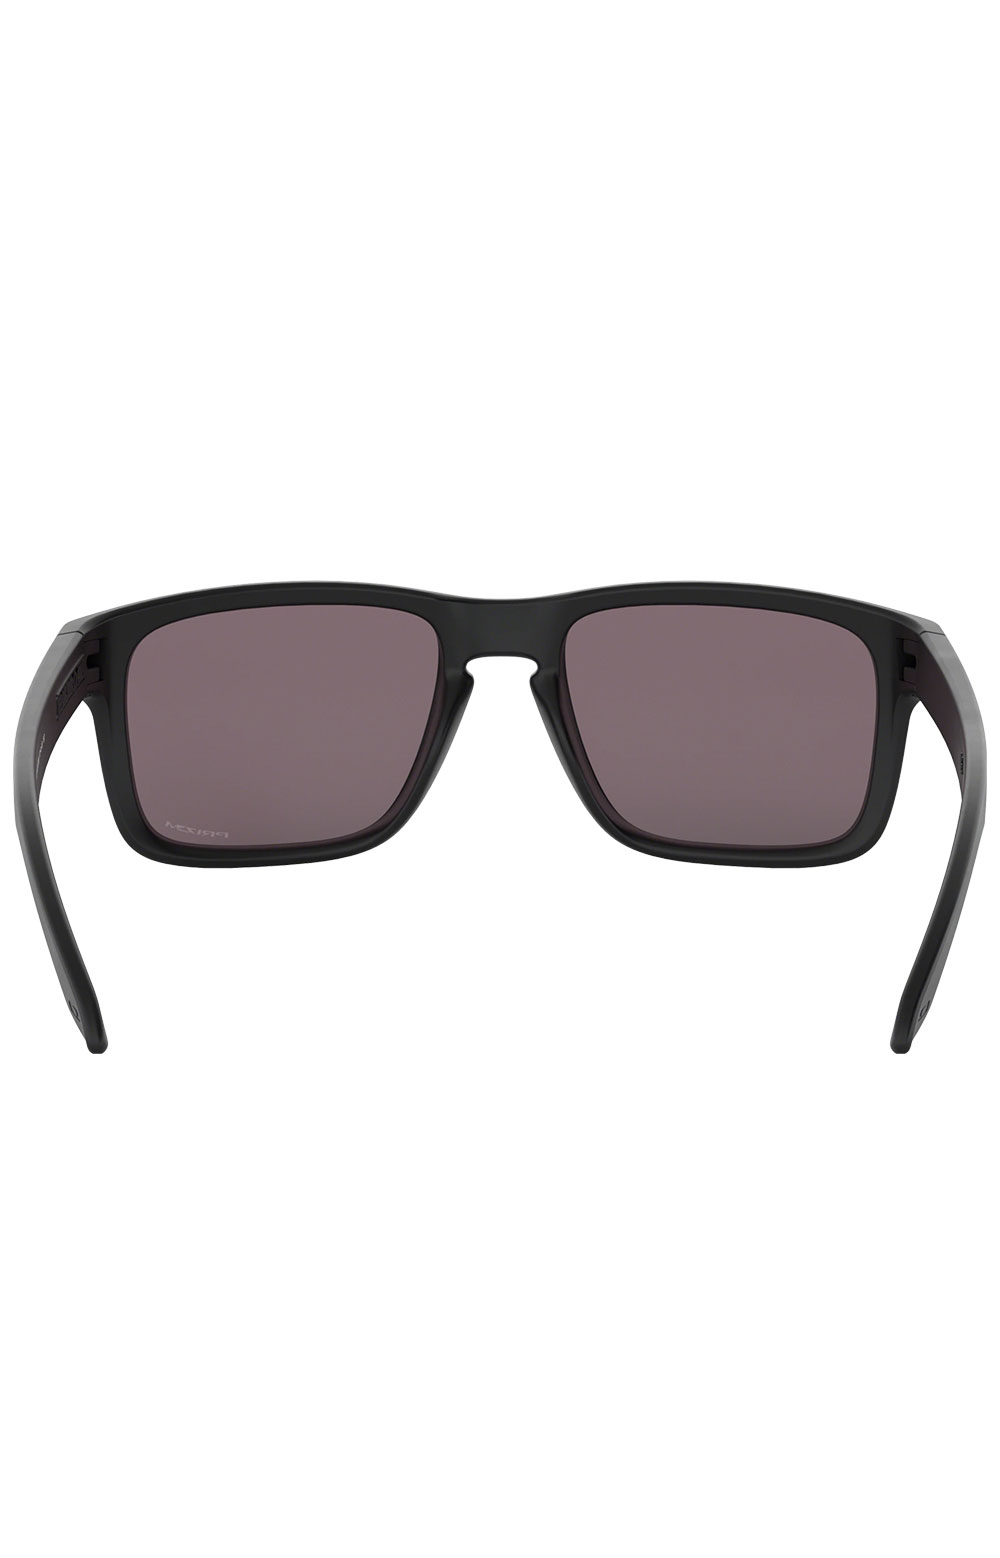 Holbrook Sunglasses - Matte Black/Prizm Grey  3